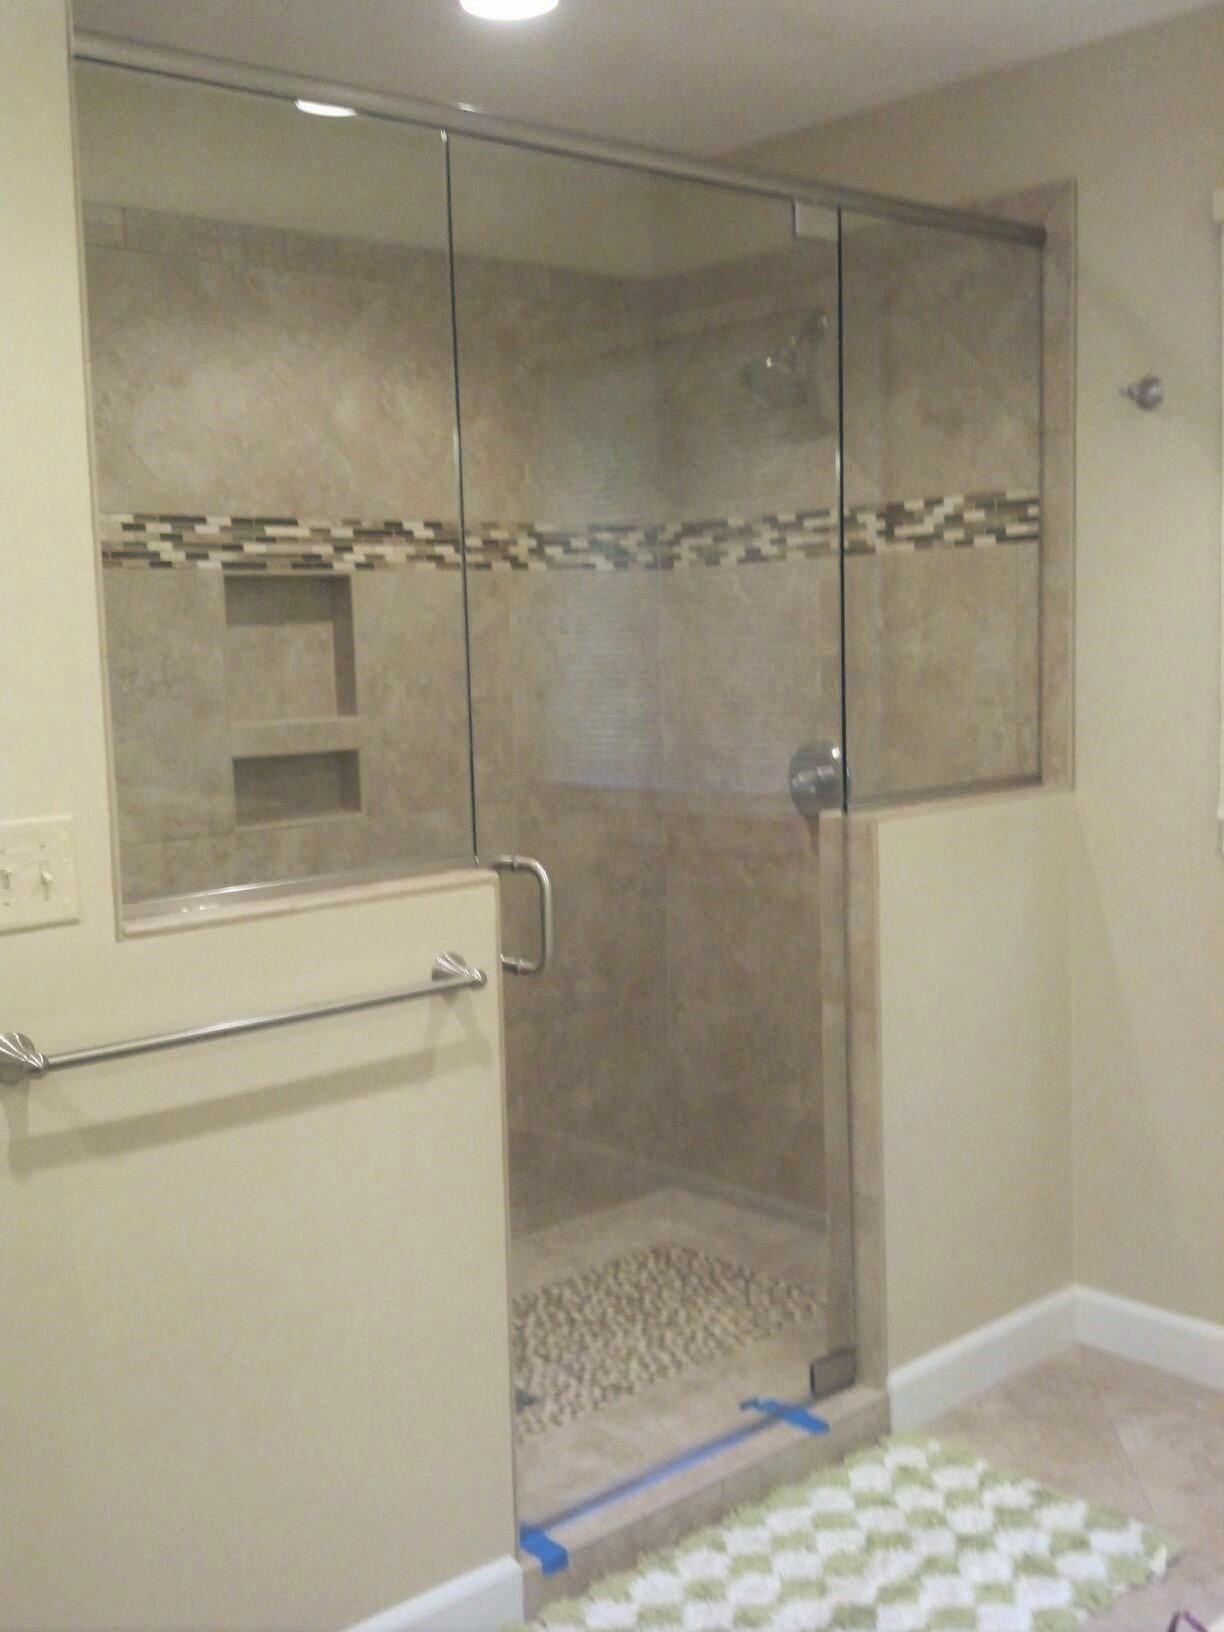 Shower Doors Fayetteville NC & Shower Doors | Fayetteville Rockingham Pinehurst u0026 Laurinburg NC ...